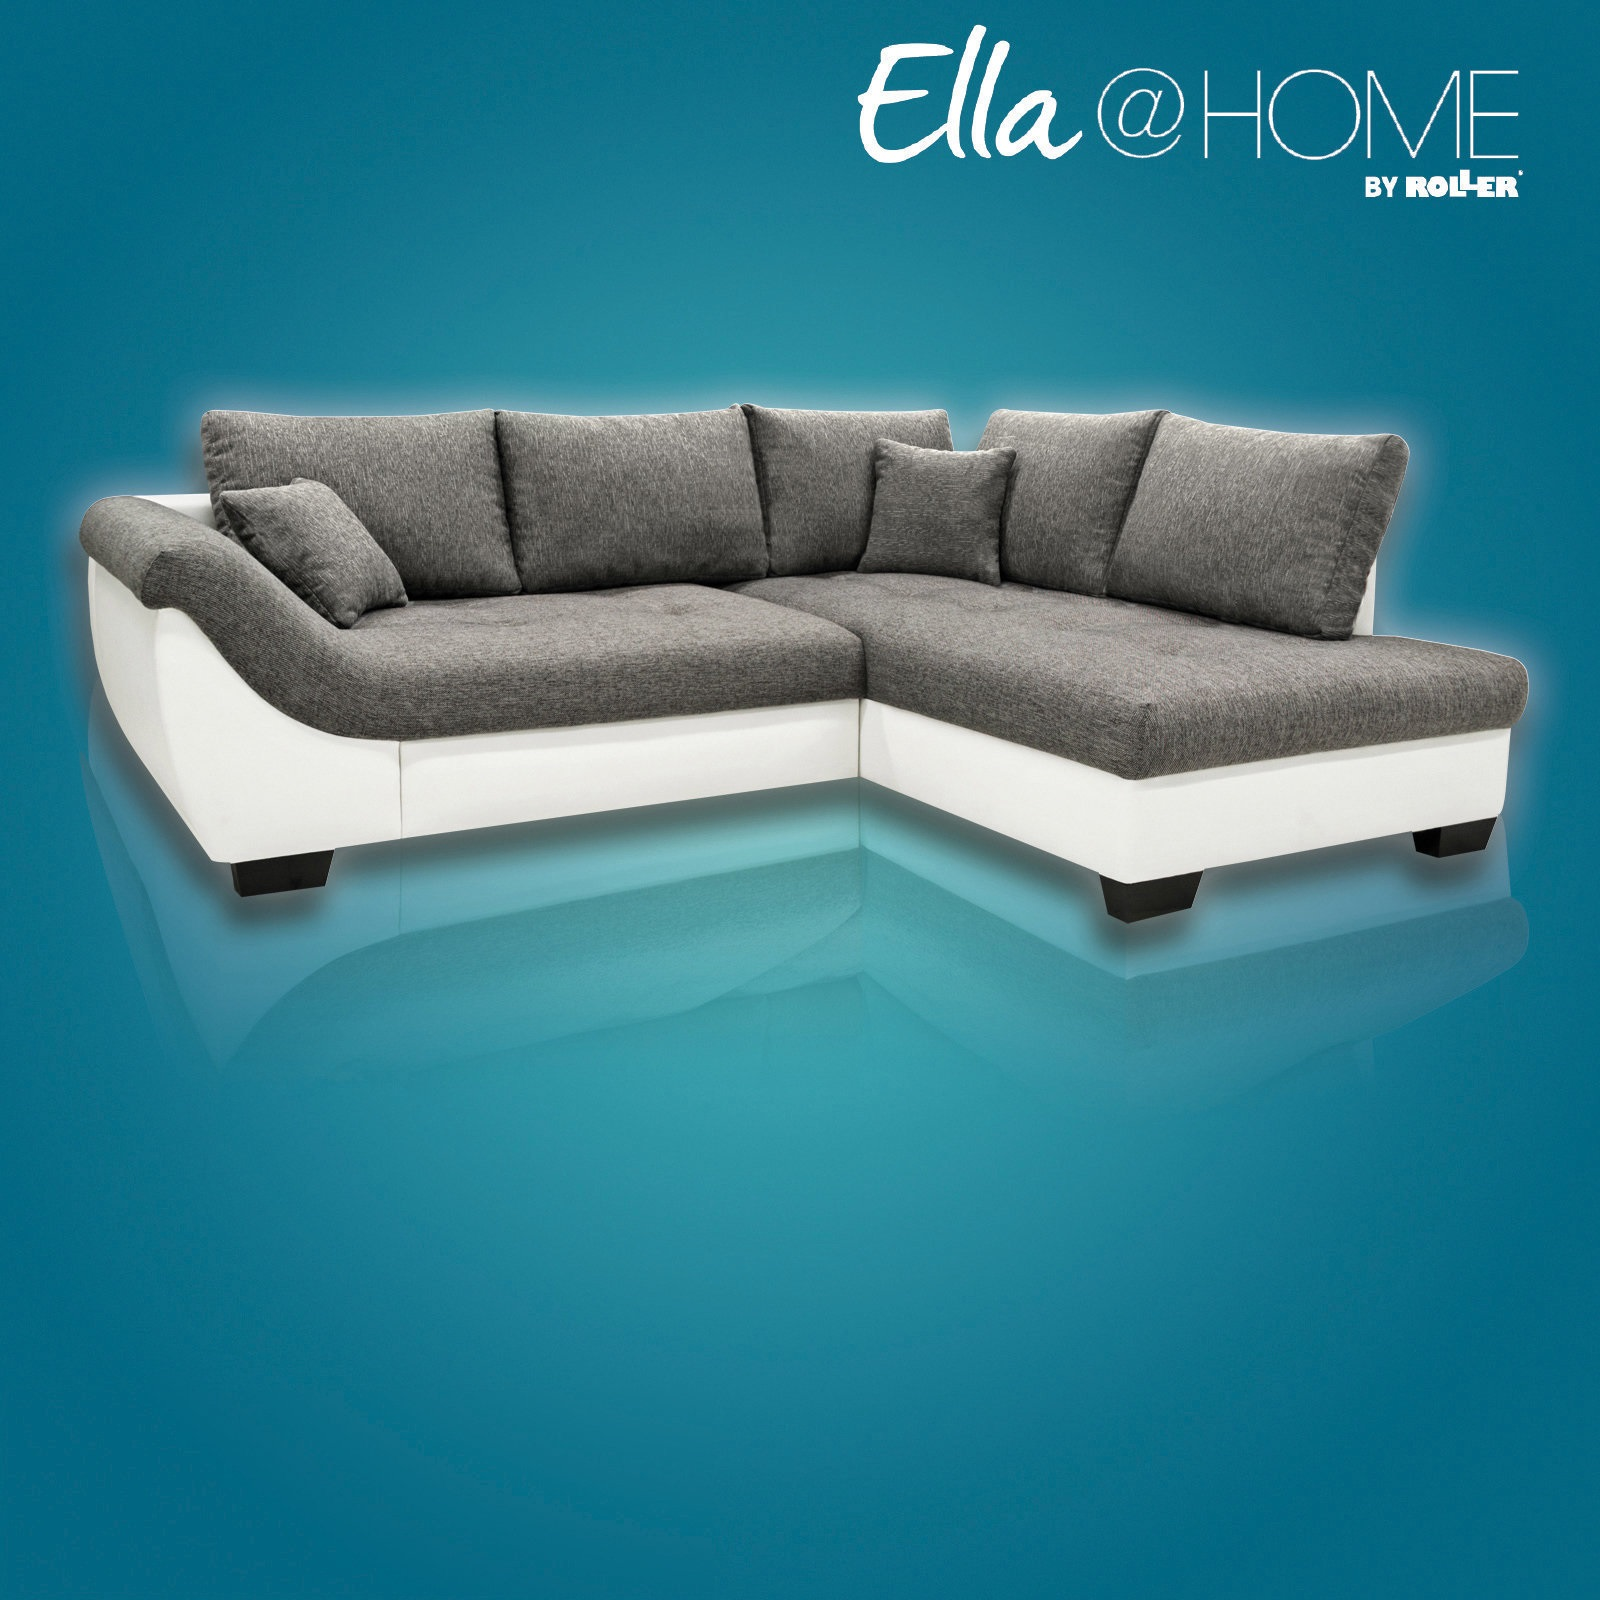 16 sparen ecksofa nizza von ella home in wei. Black Bedroom Furniture Sets. Home Design Ideas